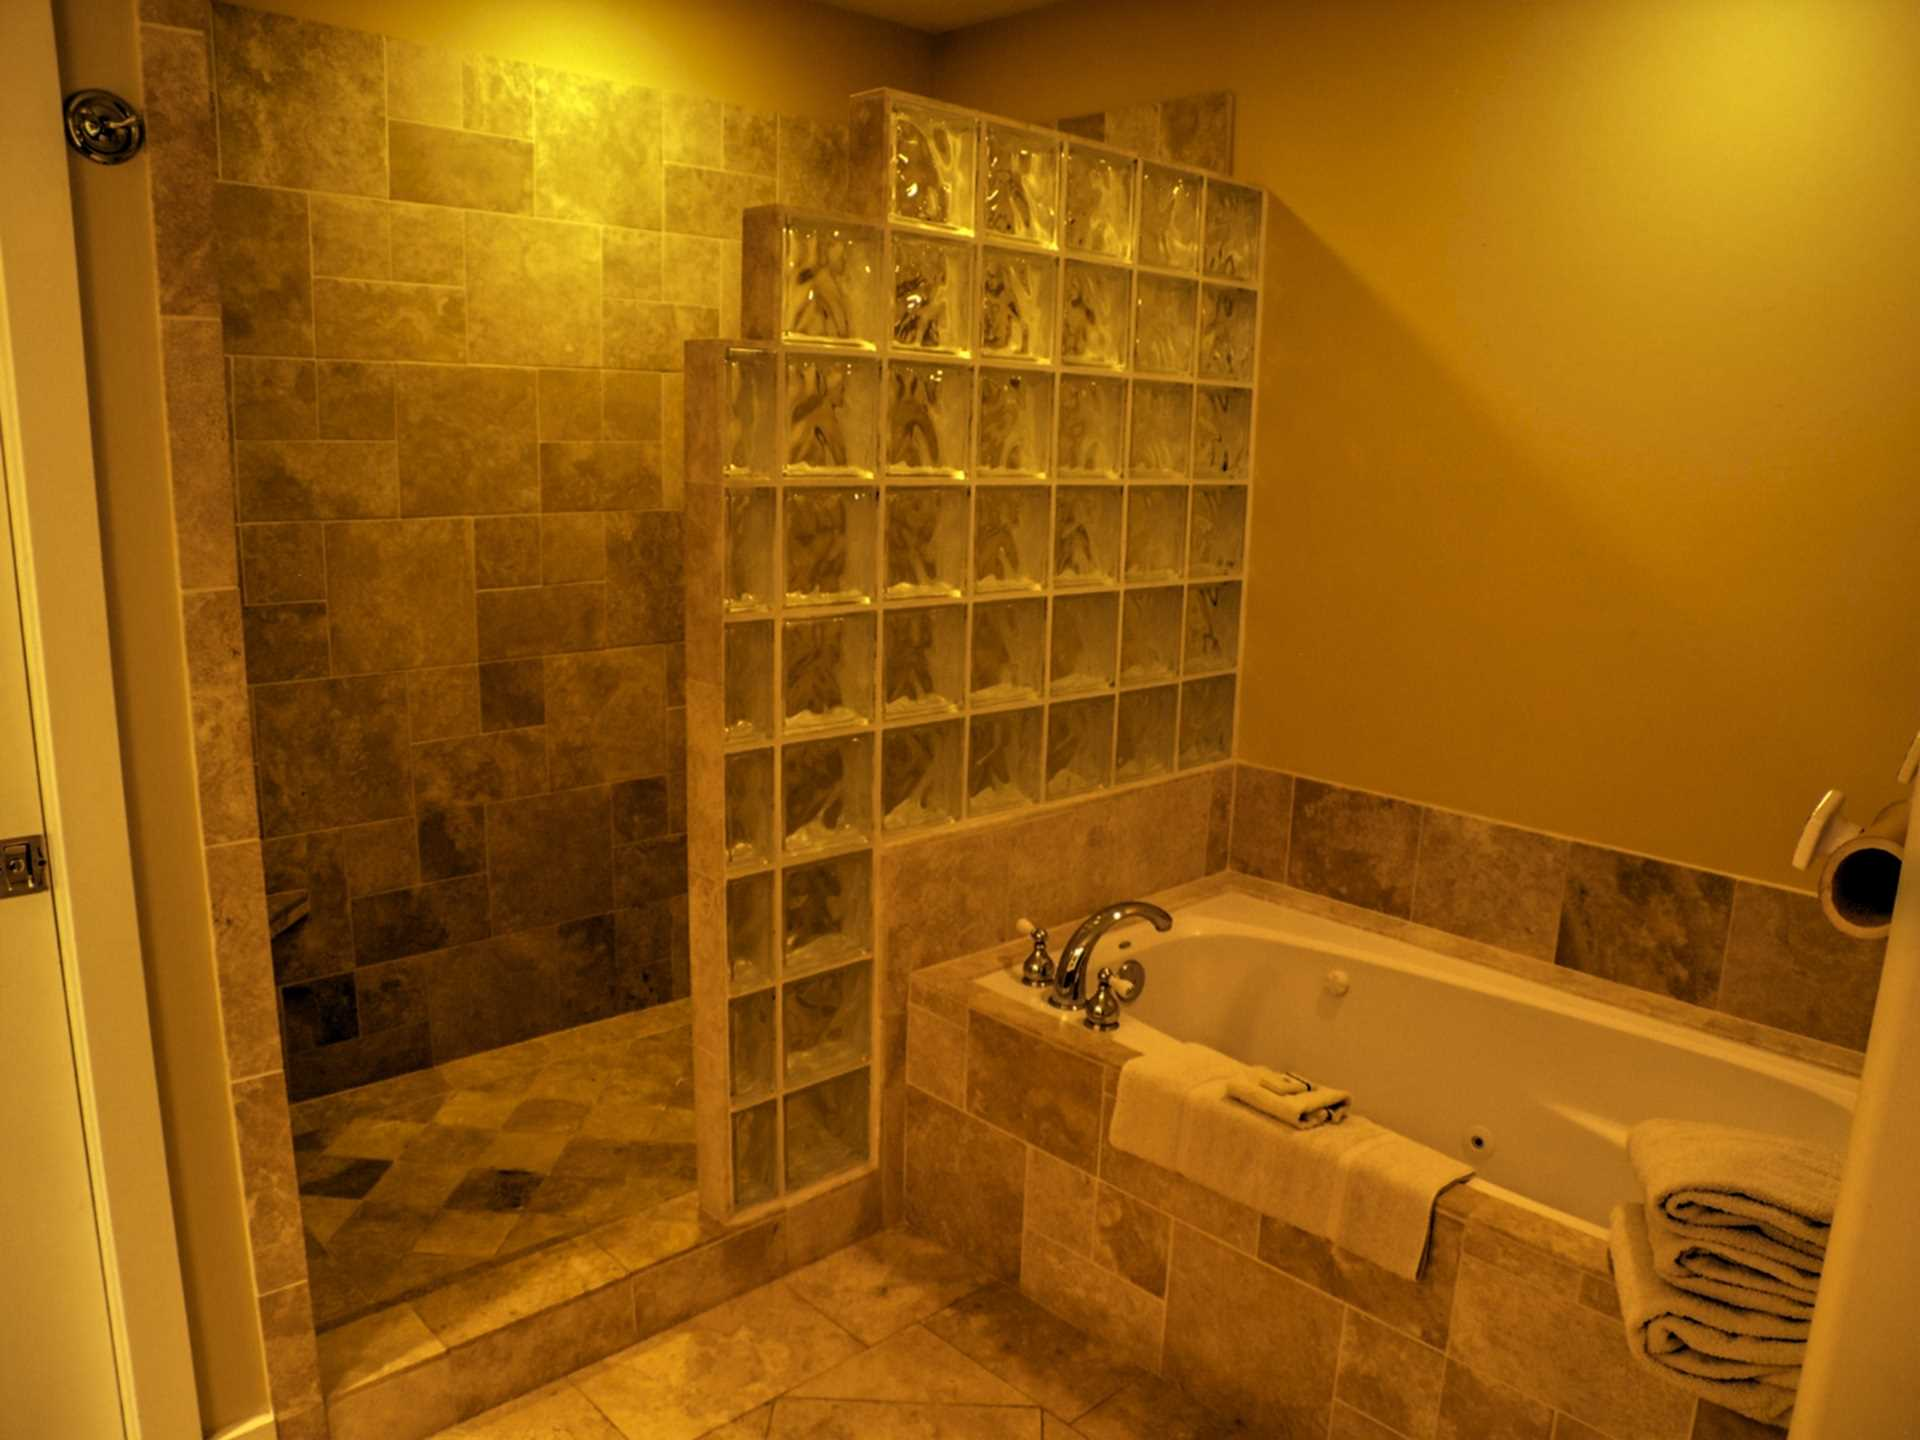 Master bath of travertine tile and glass block, two sink vanity